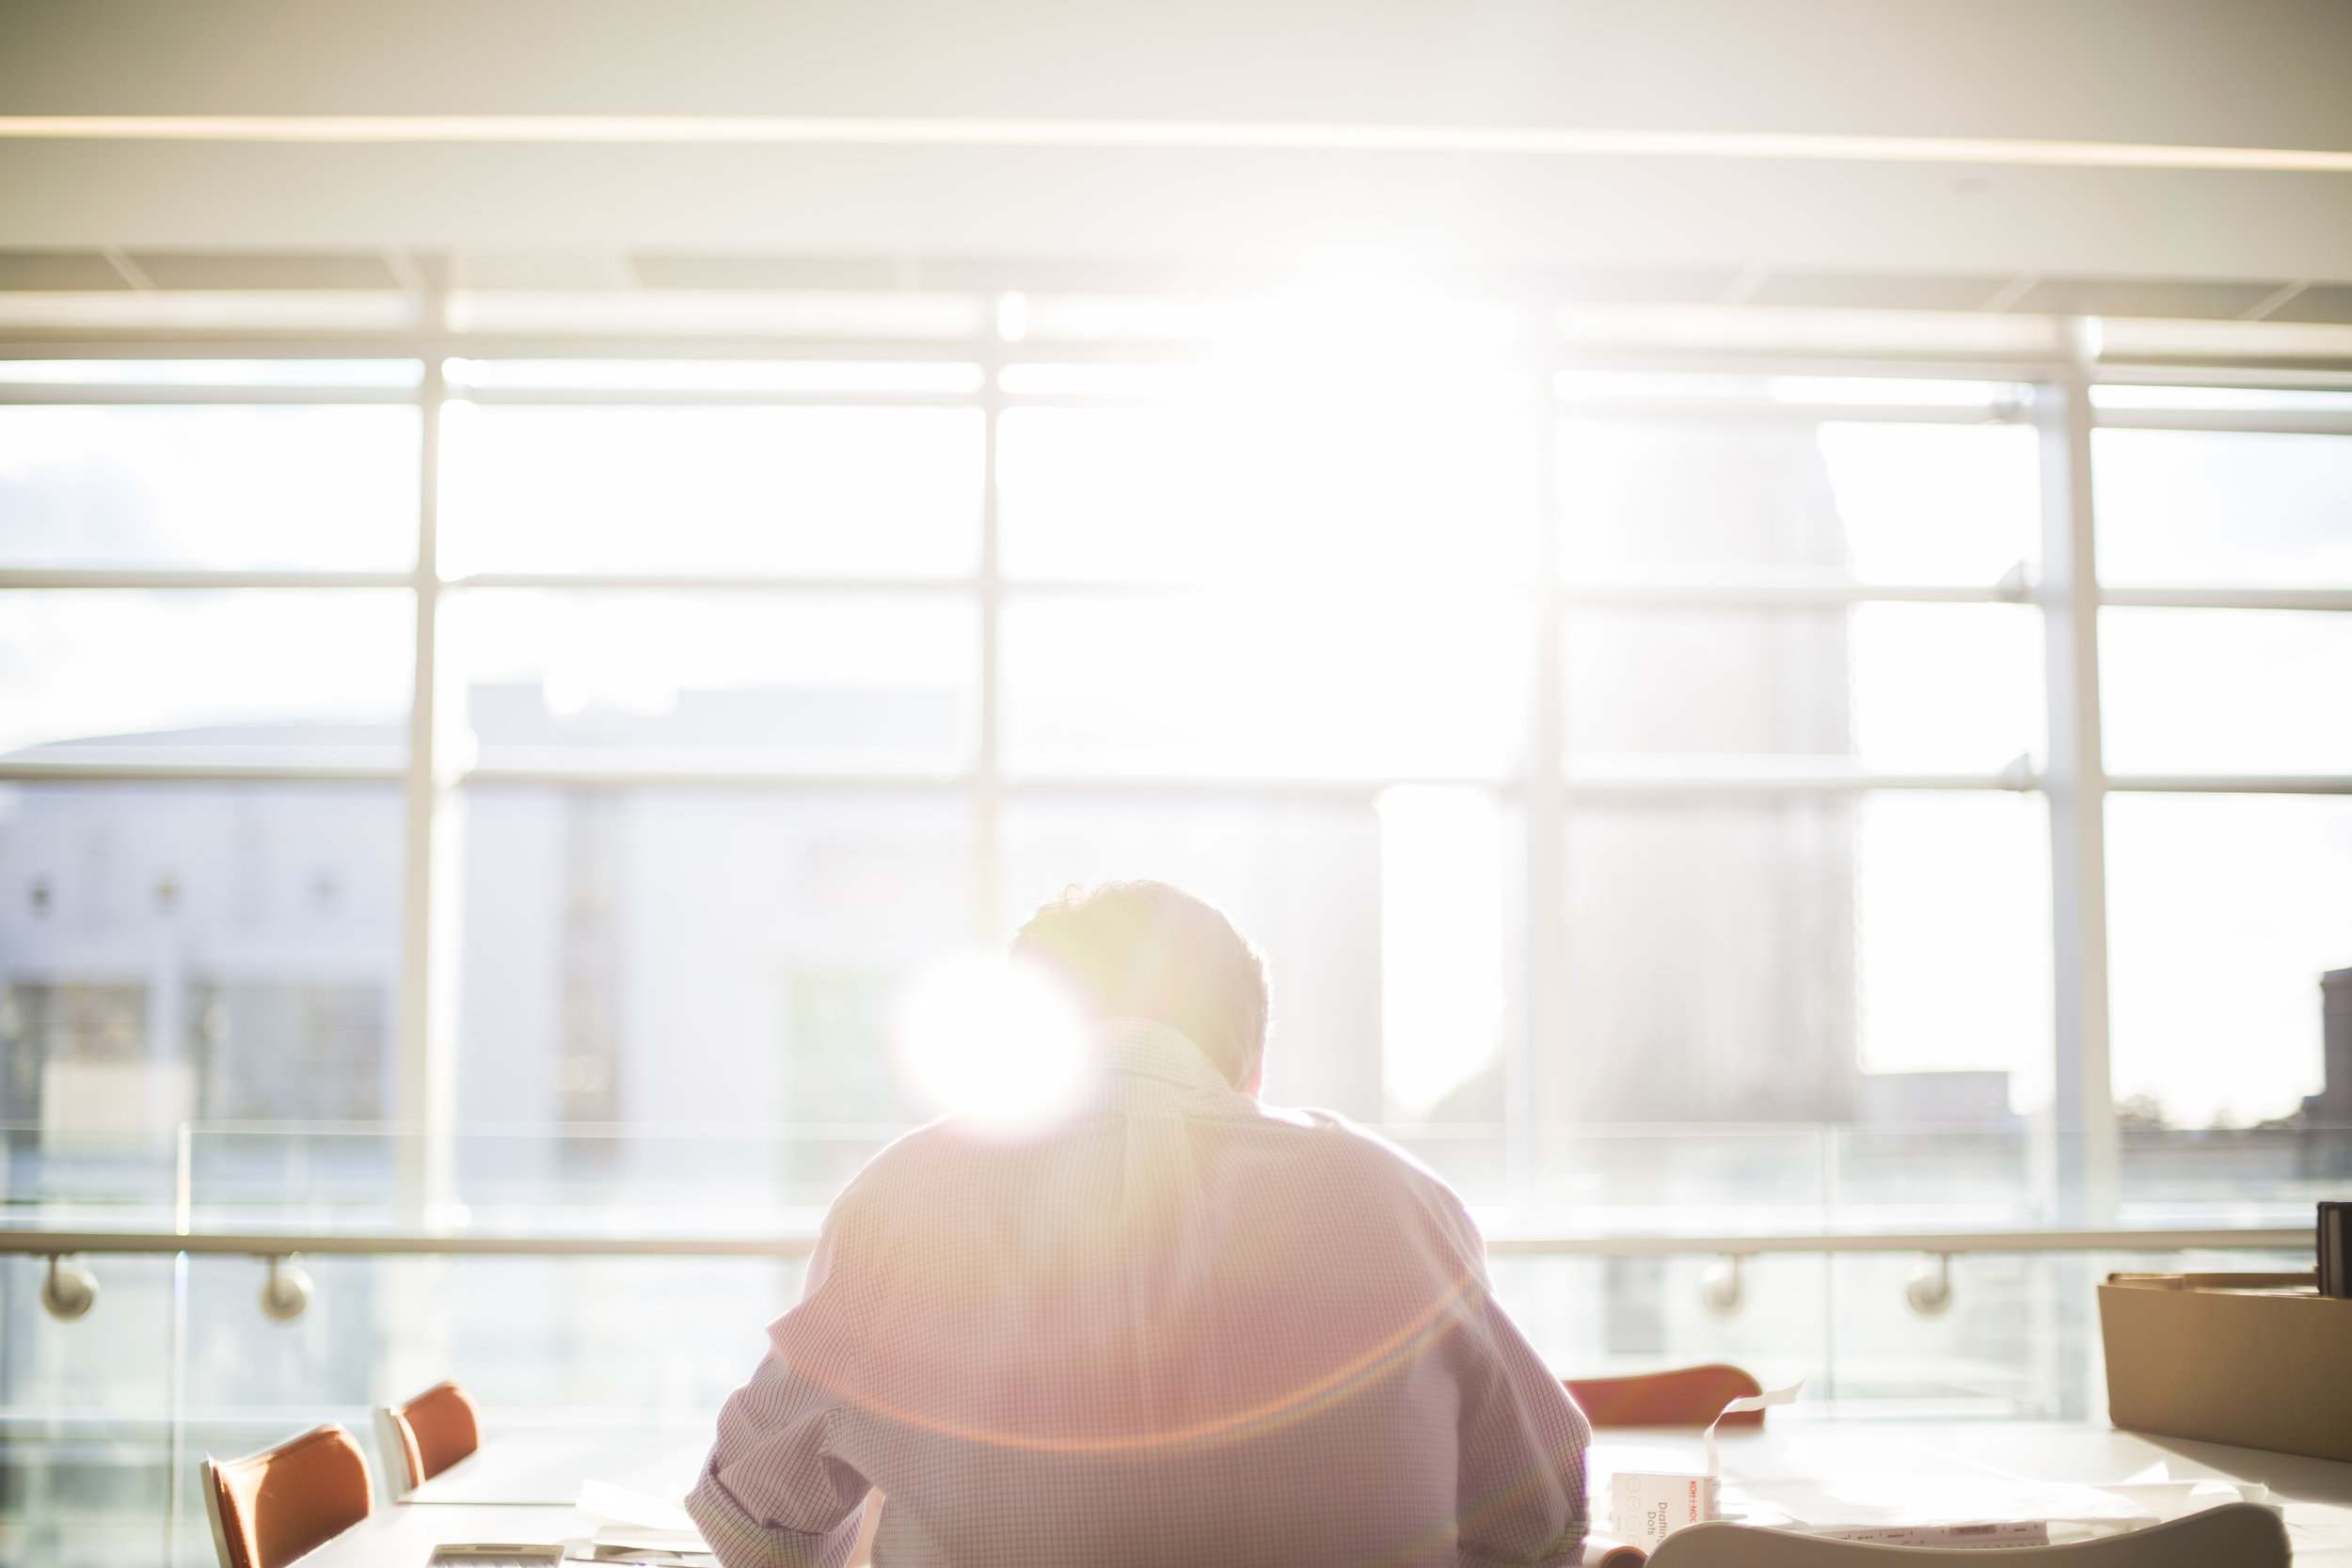 Struggling with depression at work? Here are 14 tips to help you make it through the workday.